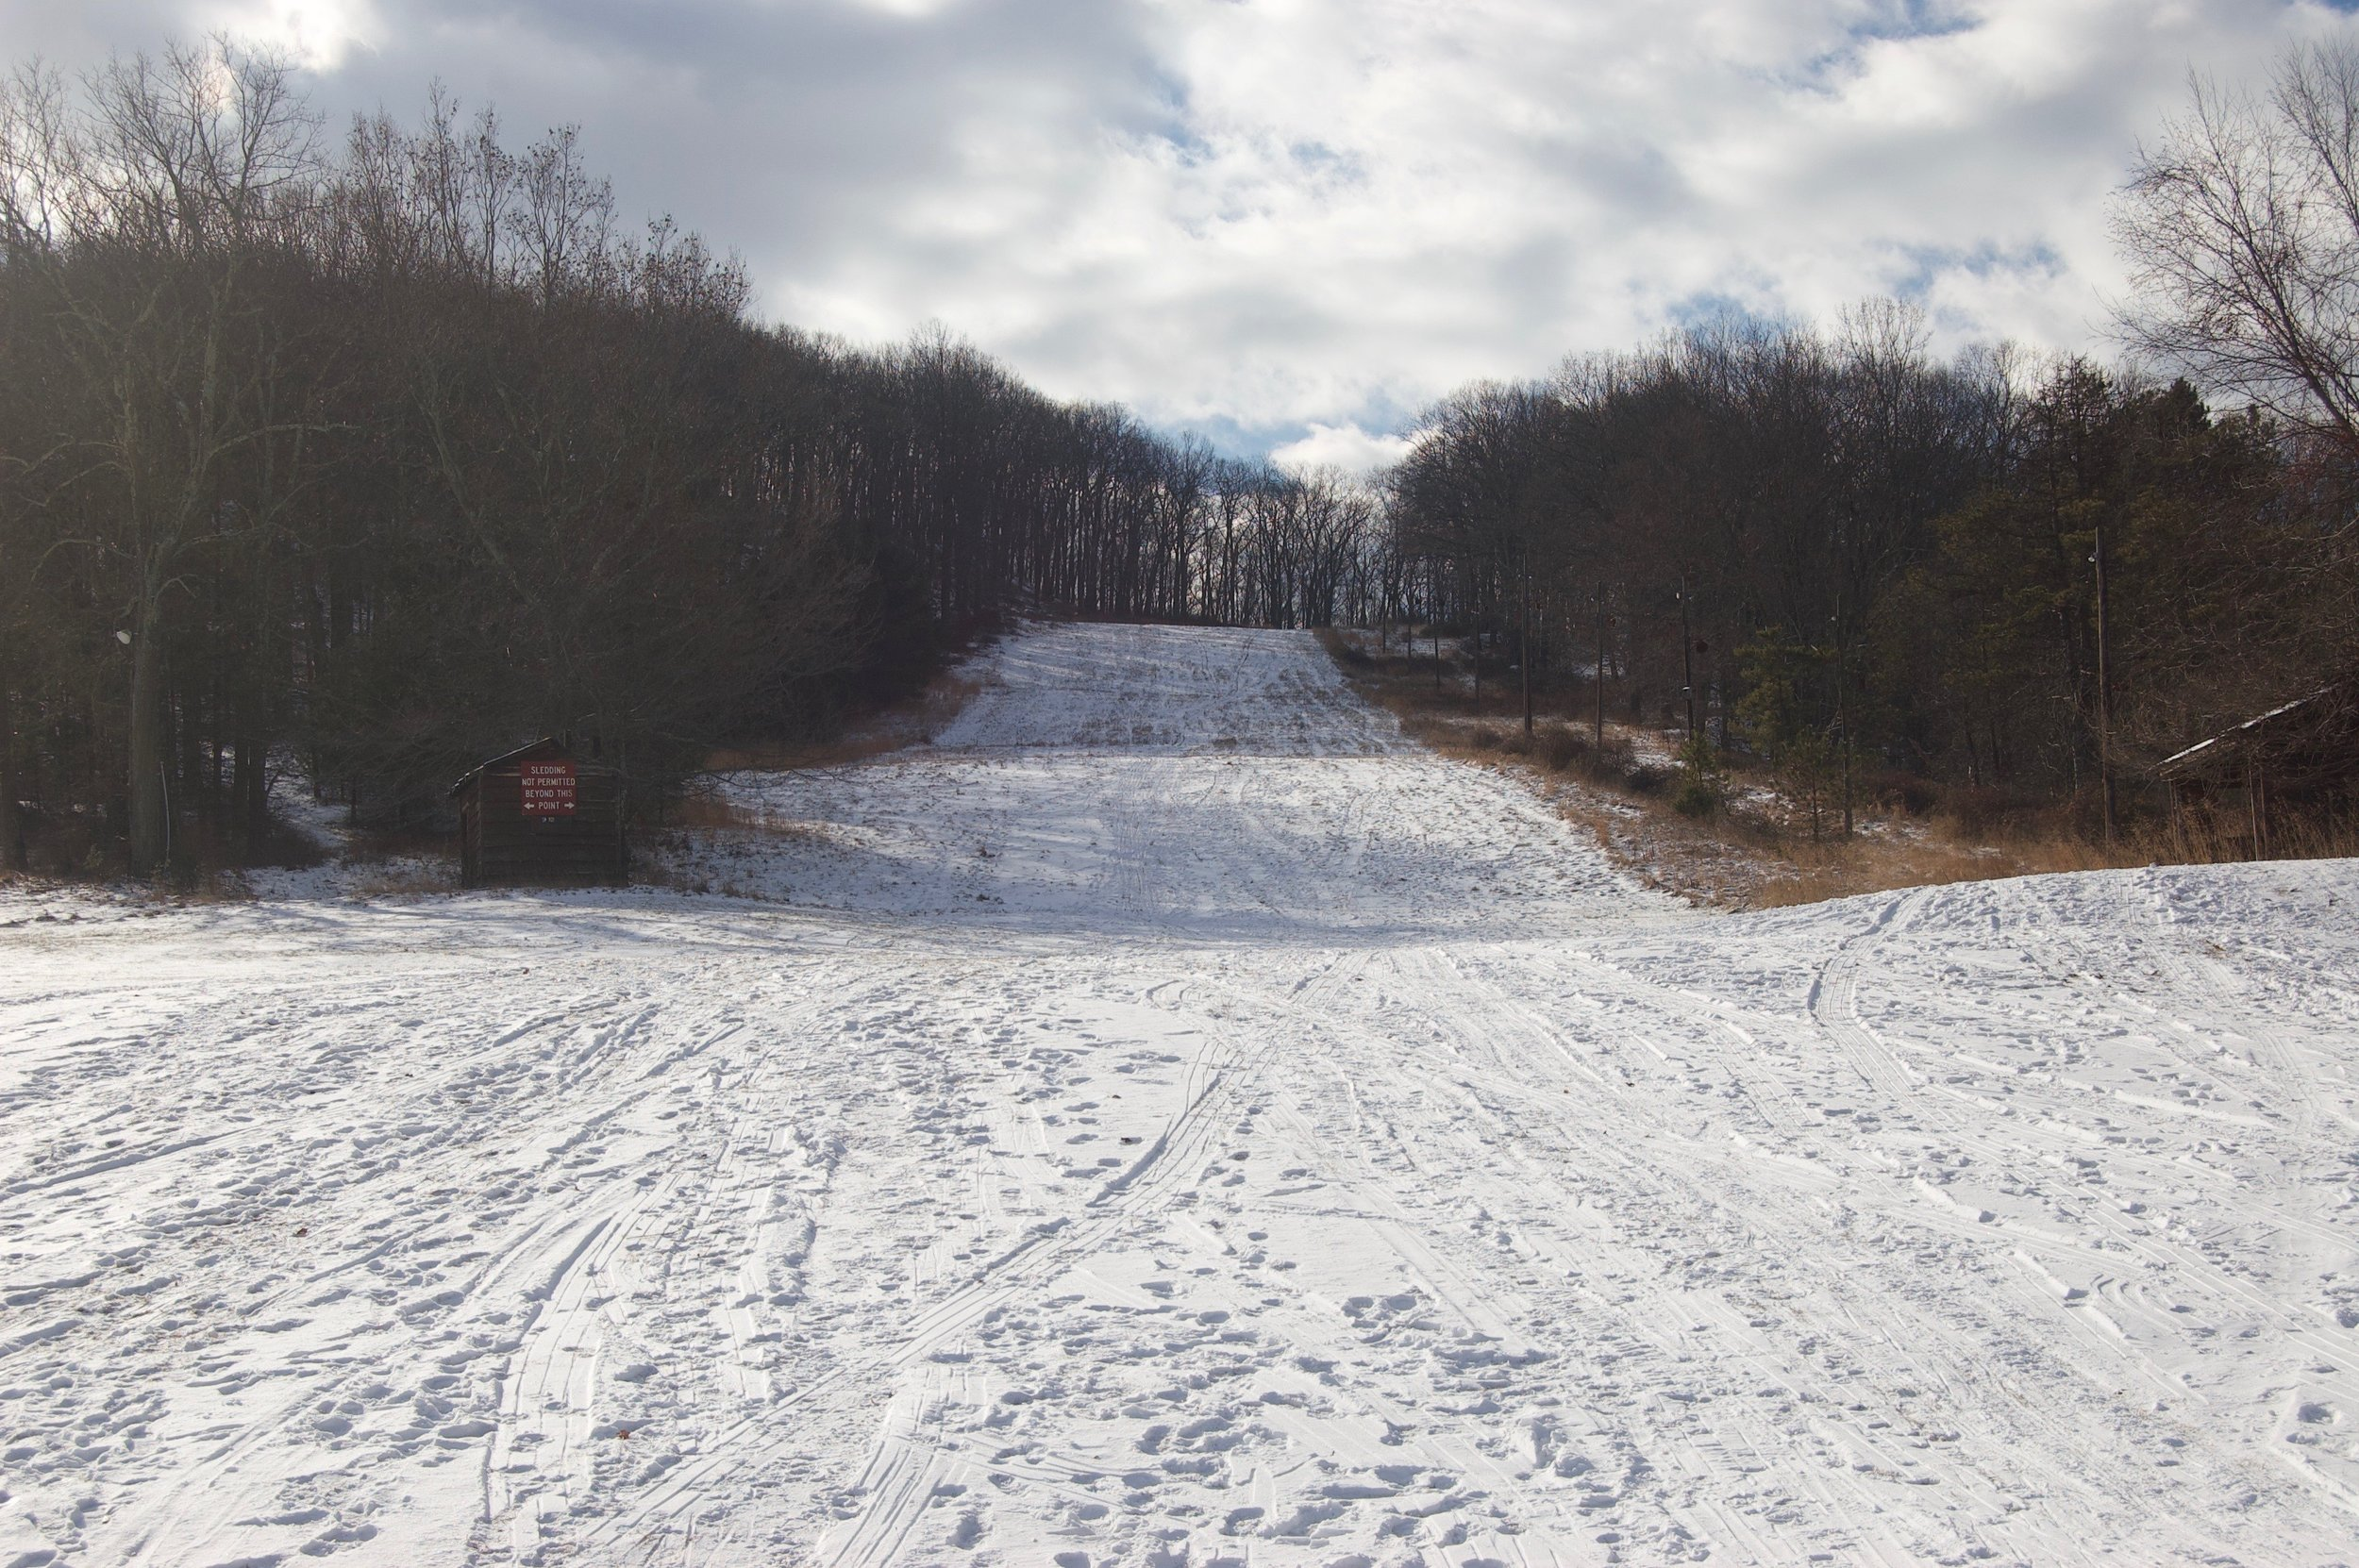 Figure 4. The Silvermine ski slope, 2017. Photograph by Robert W. Snyder.